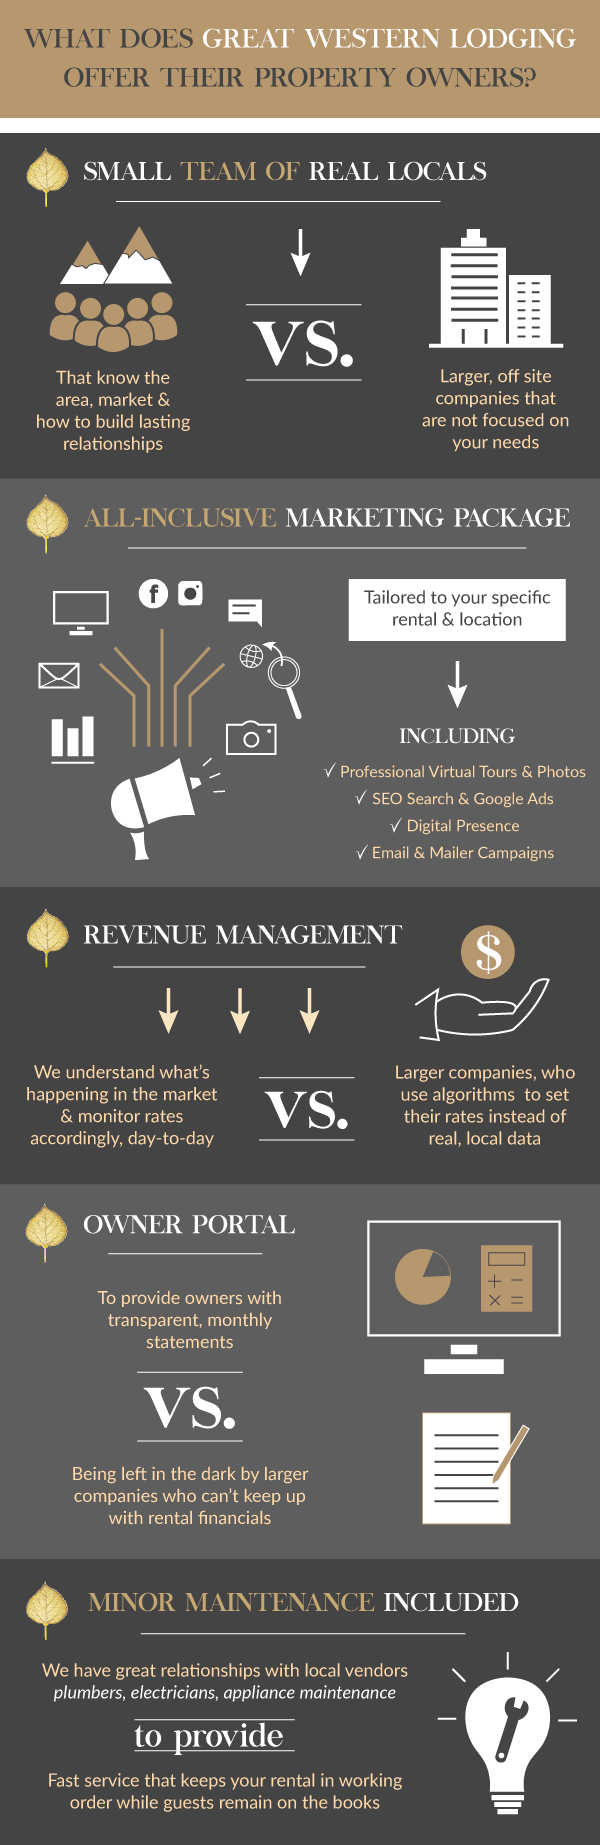 Great Western Lodging Property Management Infographic